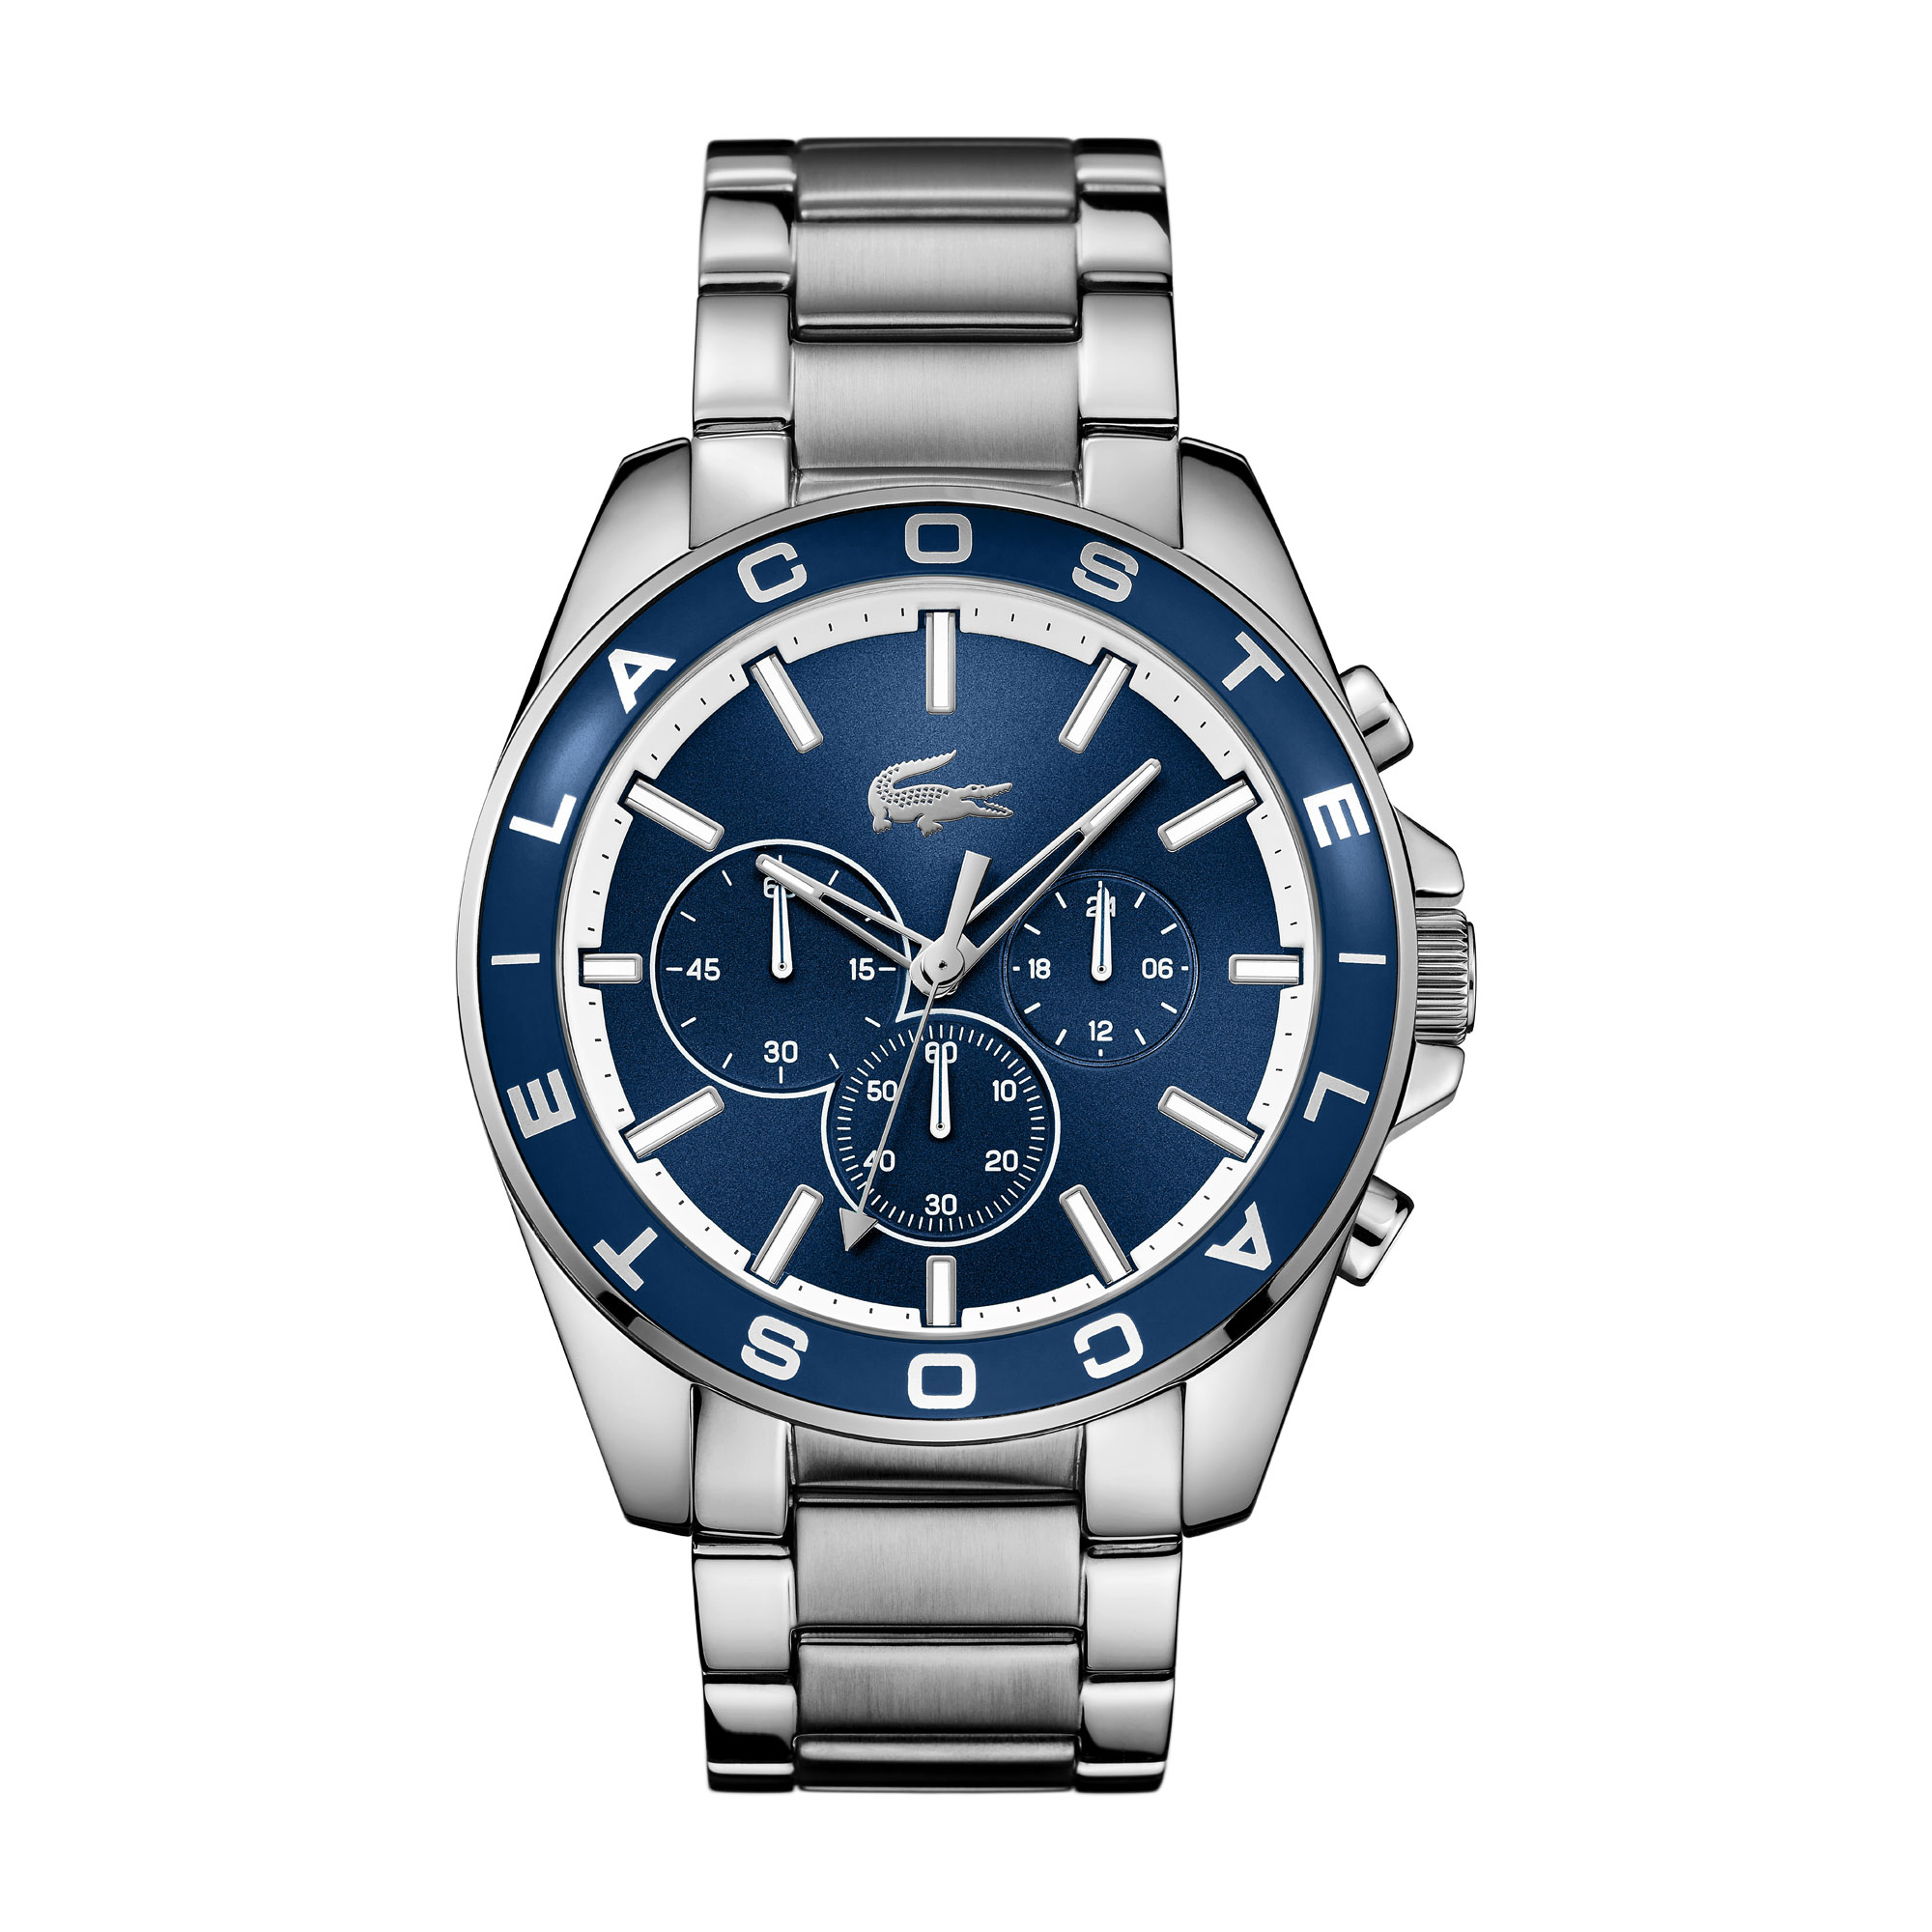 Westport blue chronograph watch with stainless steel bracelet